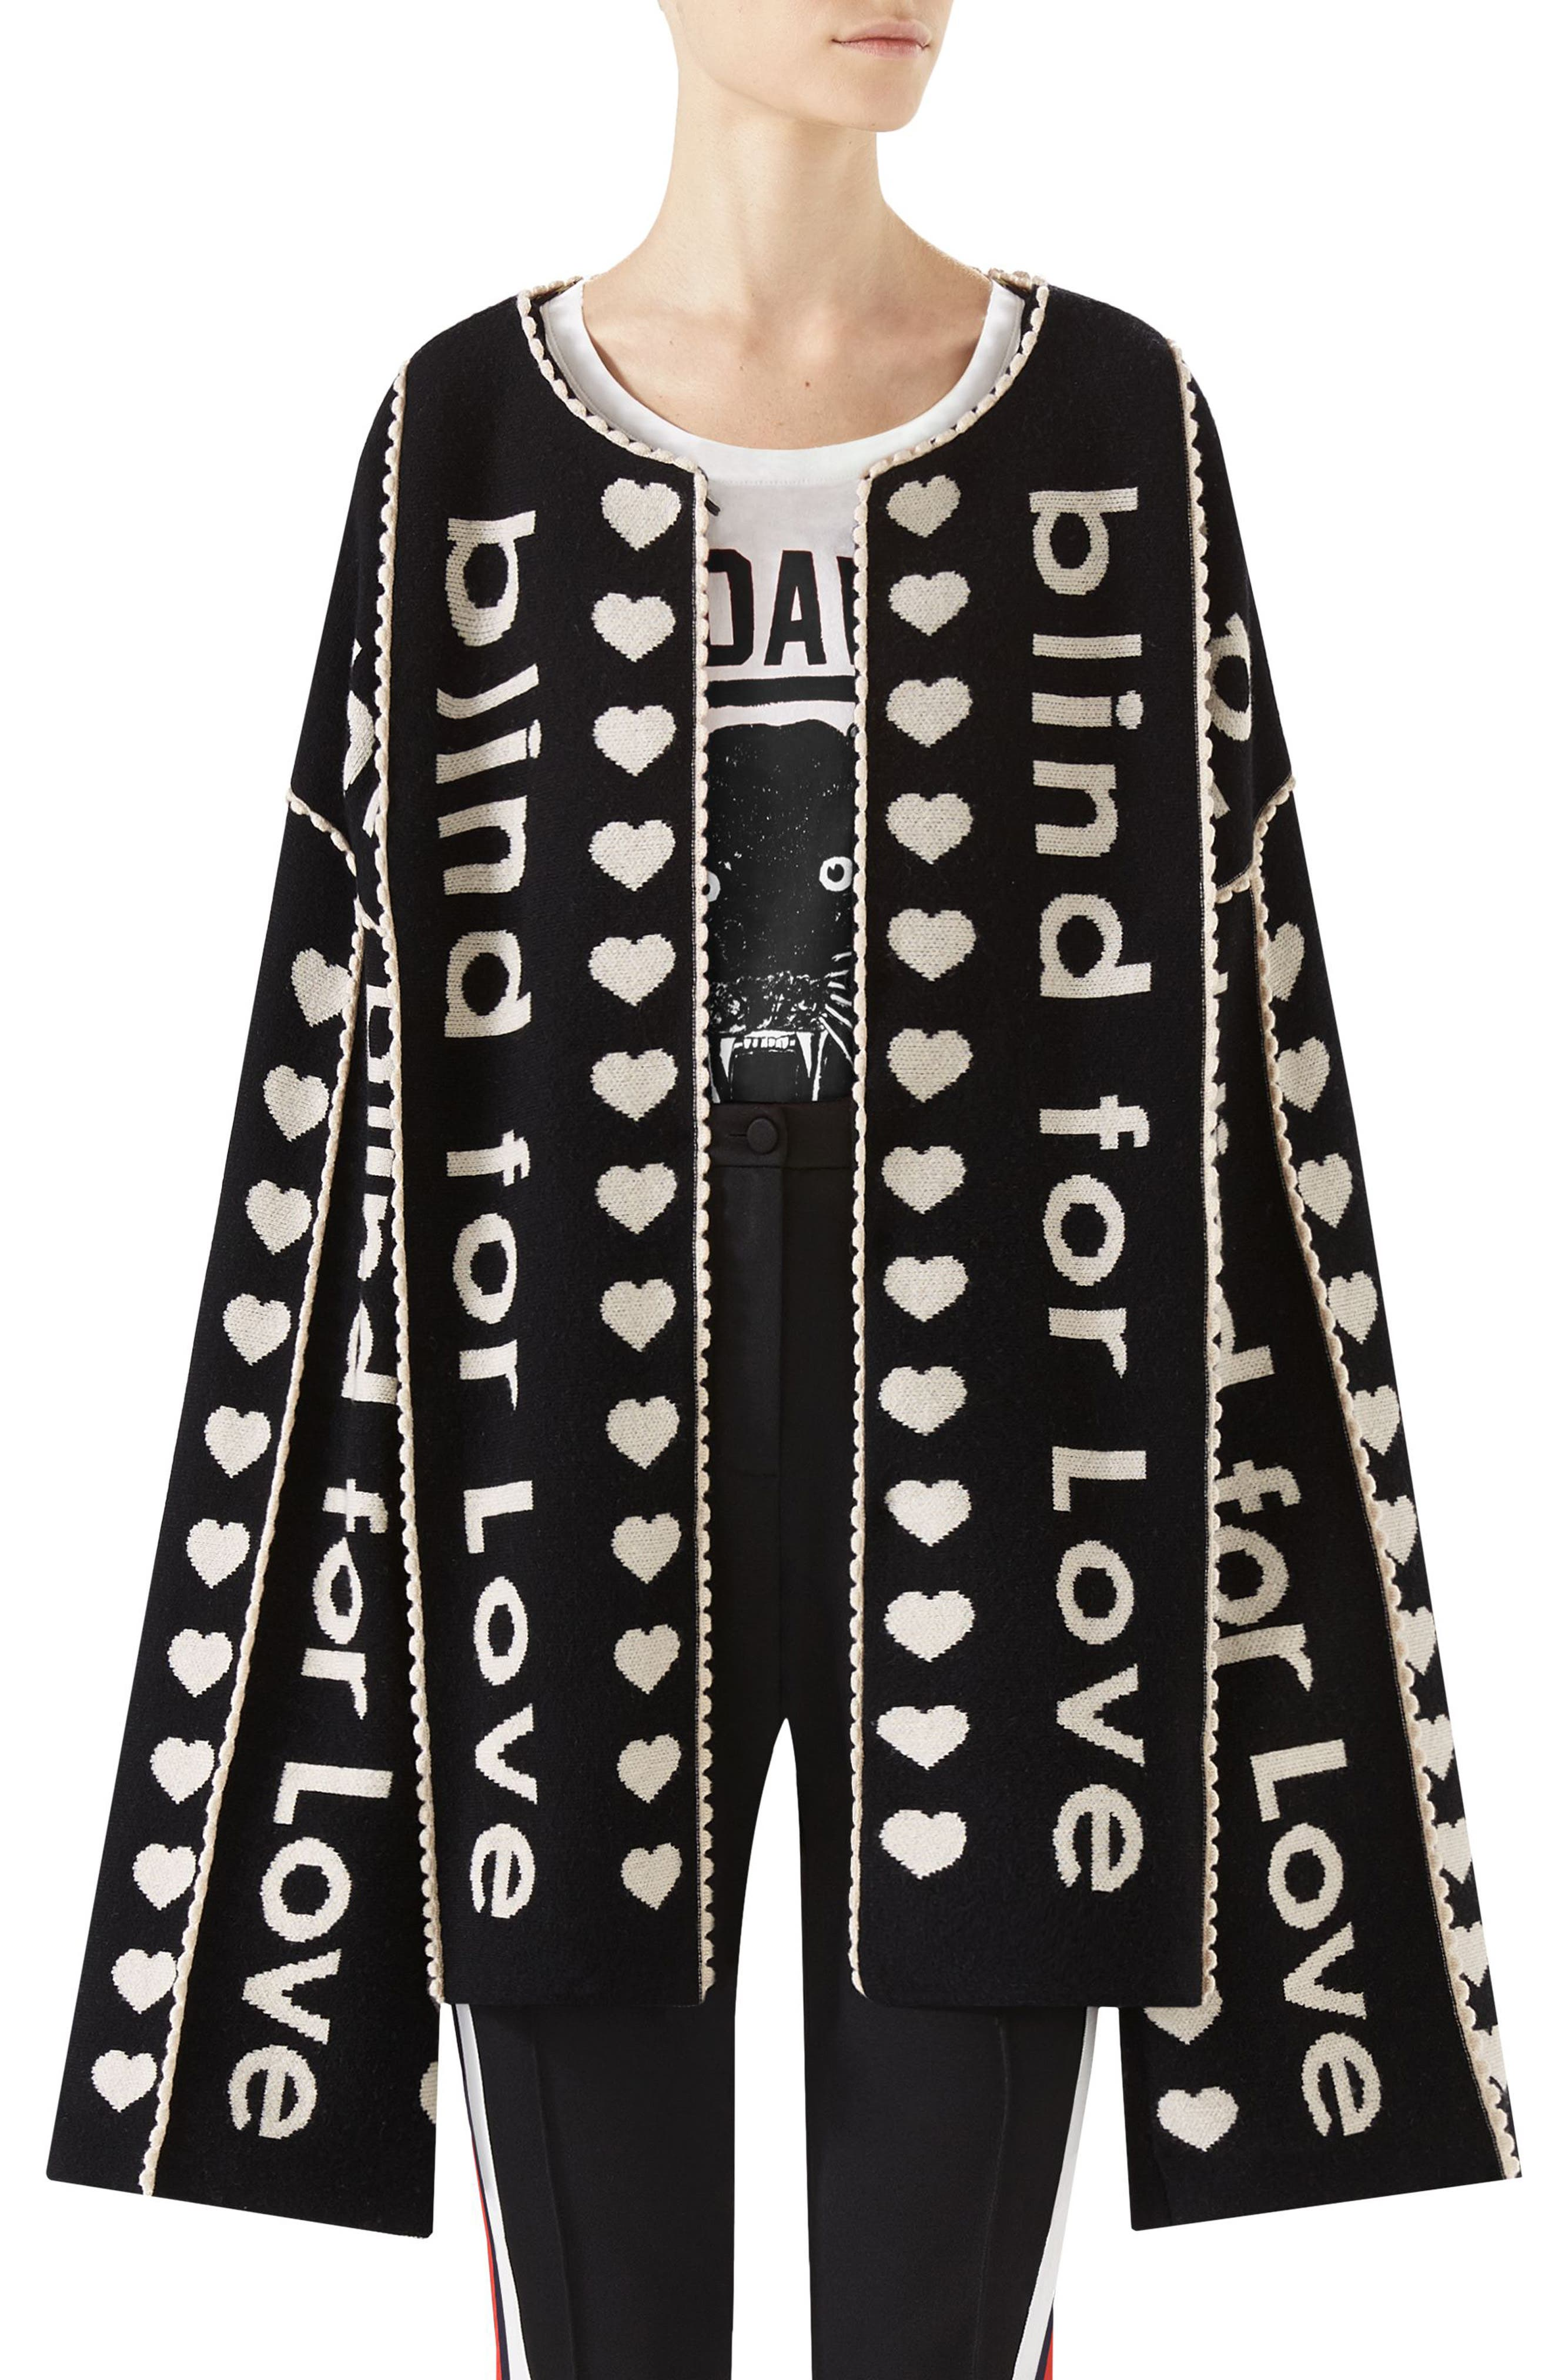 Blind for Love Jacquard Sweater Coat,                         Main,                         color, Black